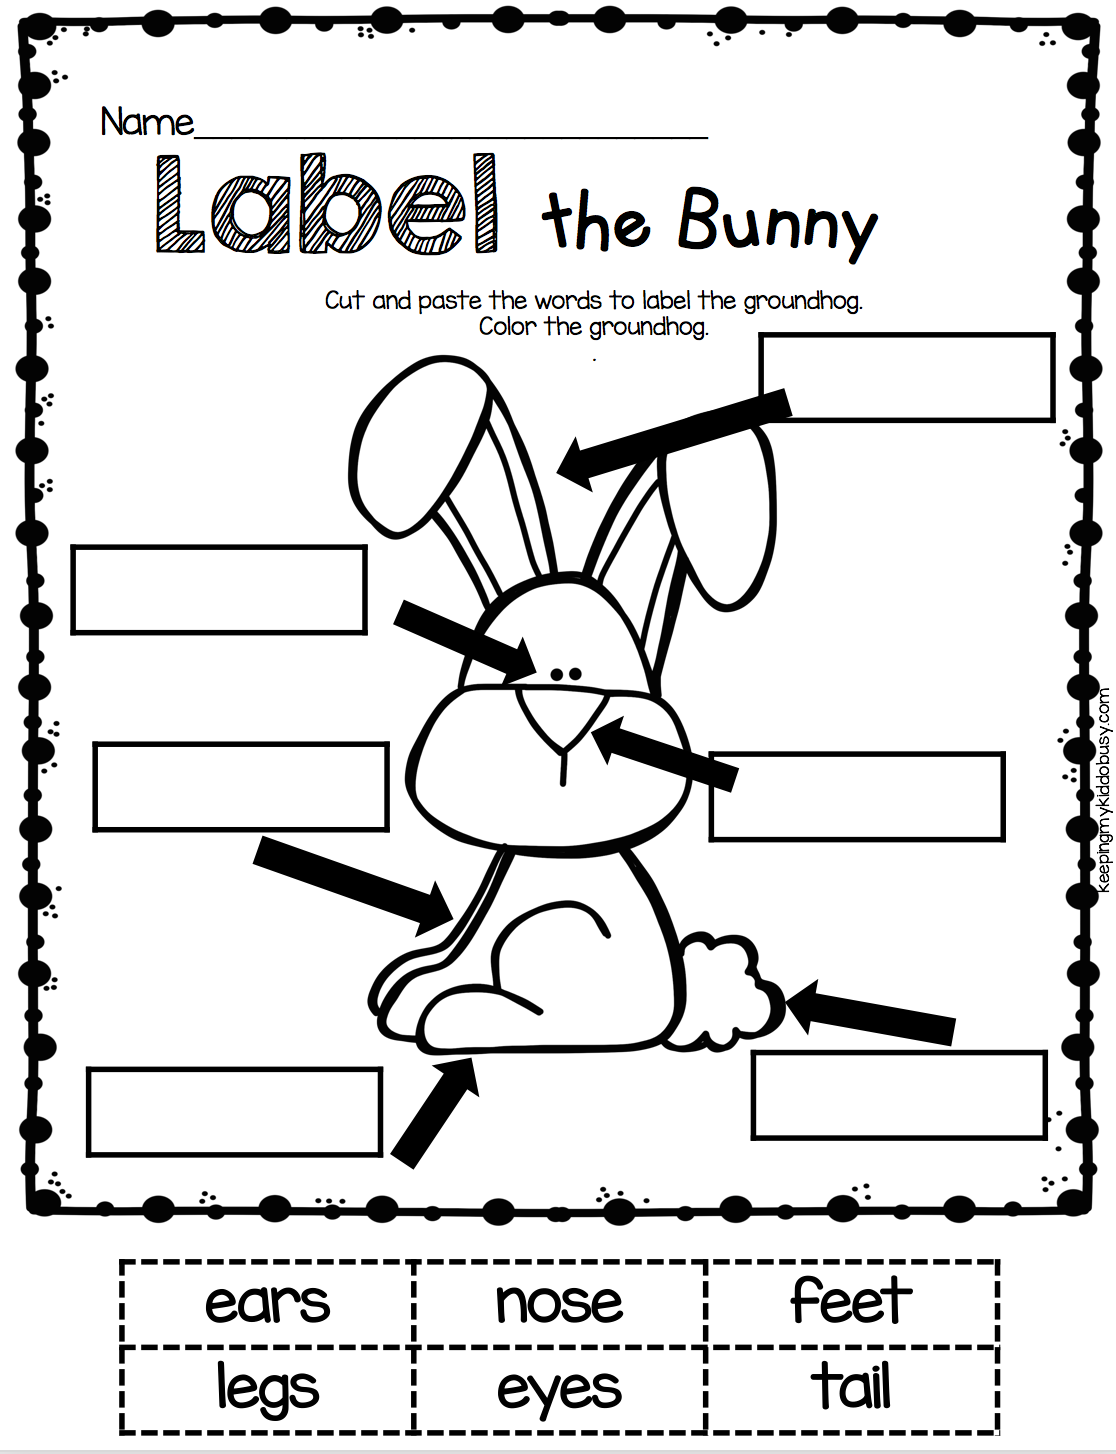 31 Innovative Printable Kindergarten Worksheets Design